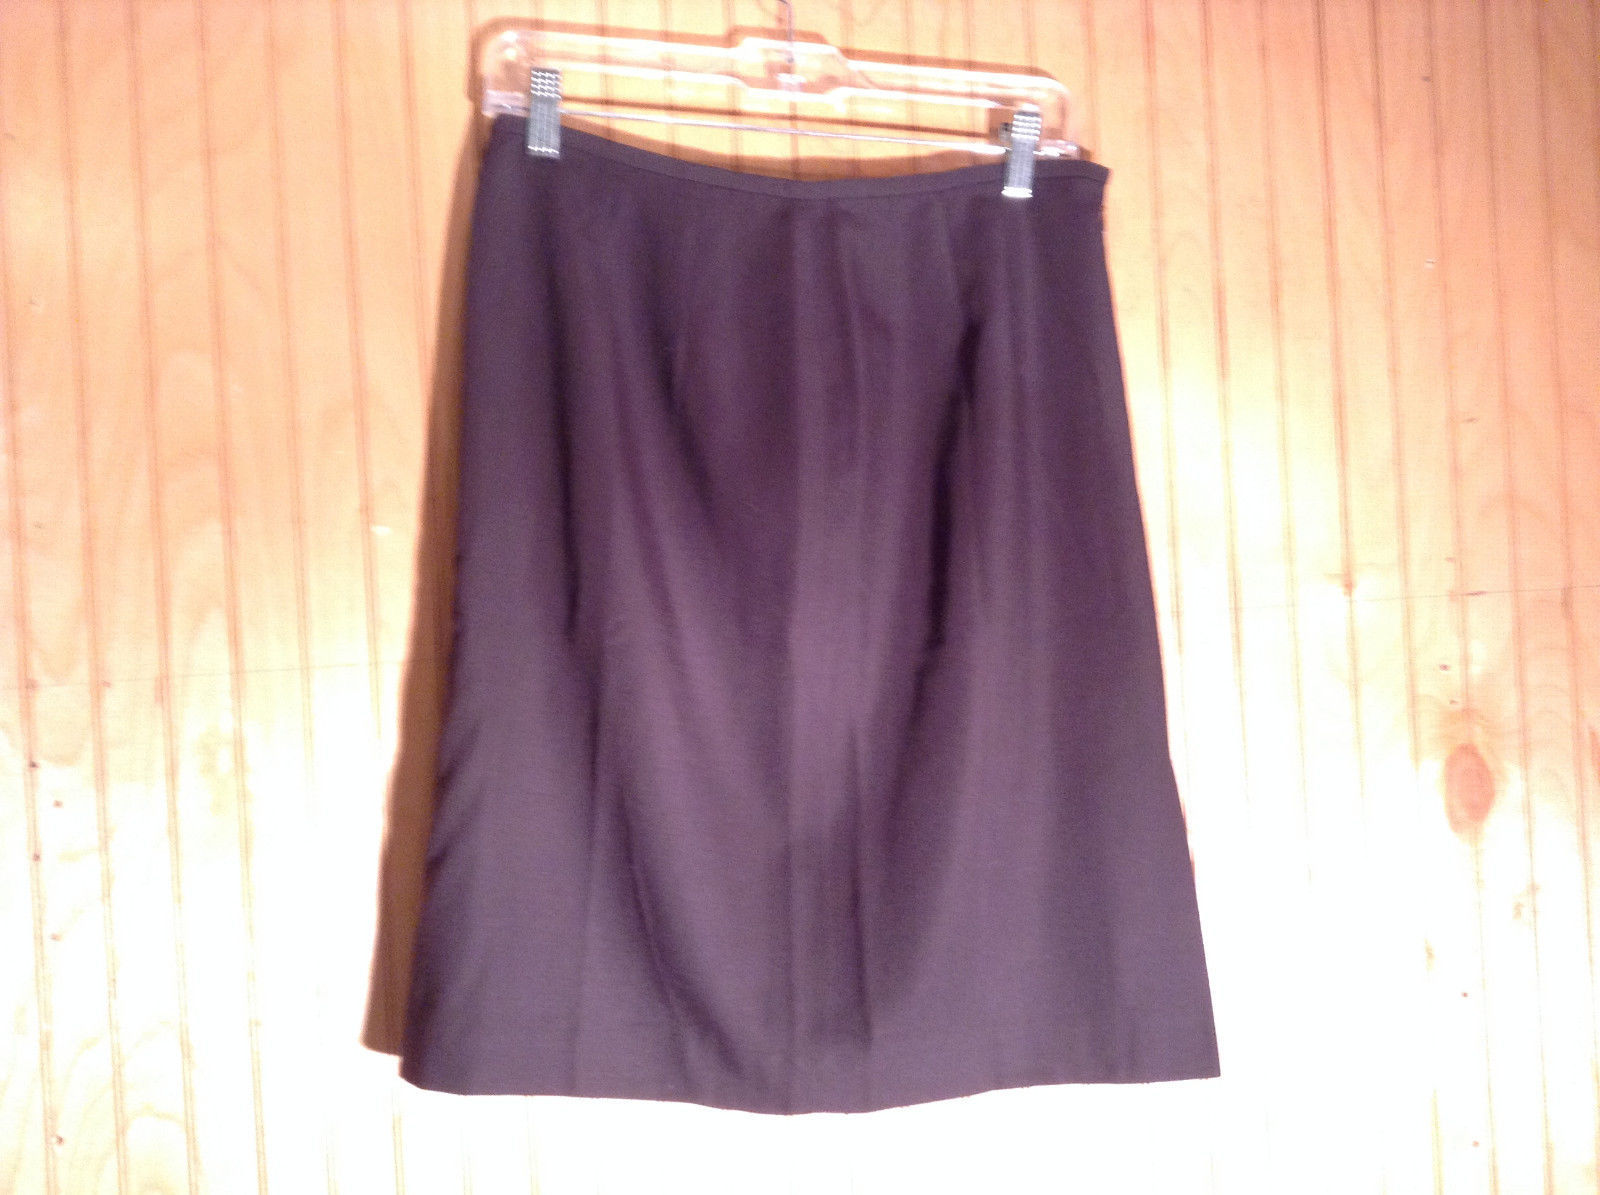 Tahari Classics Lined Black Skirt Zipper Closure on Side Made in USA Size 12